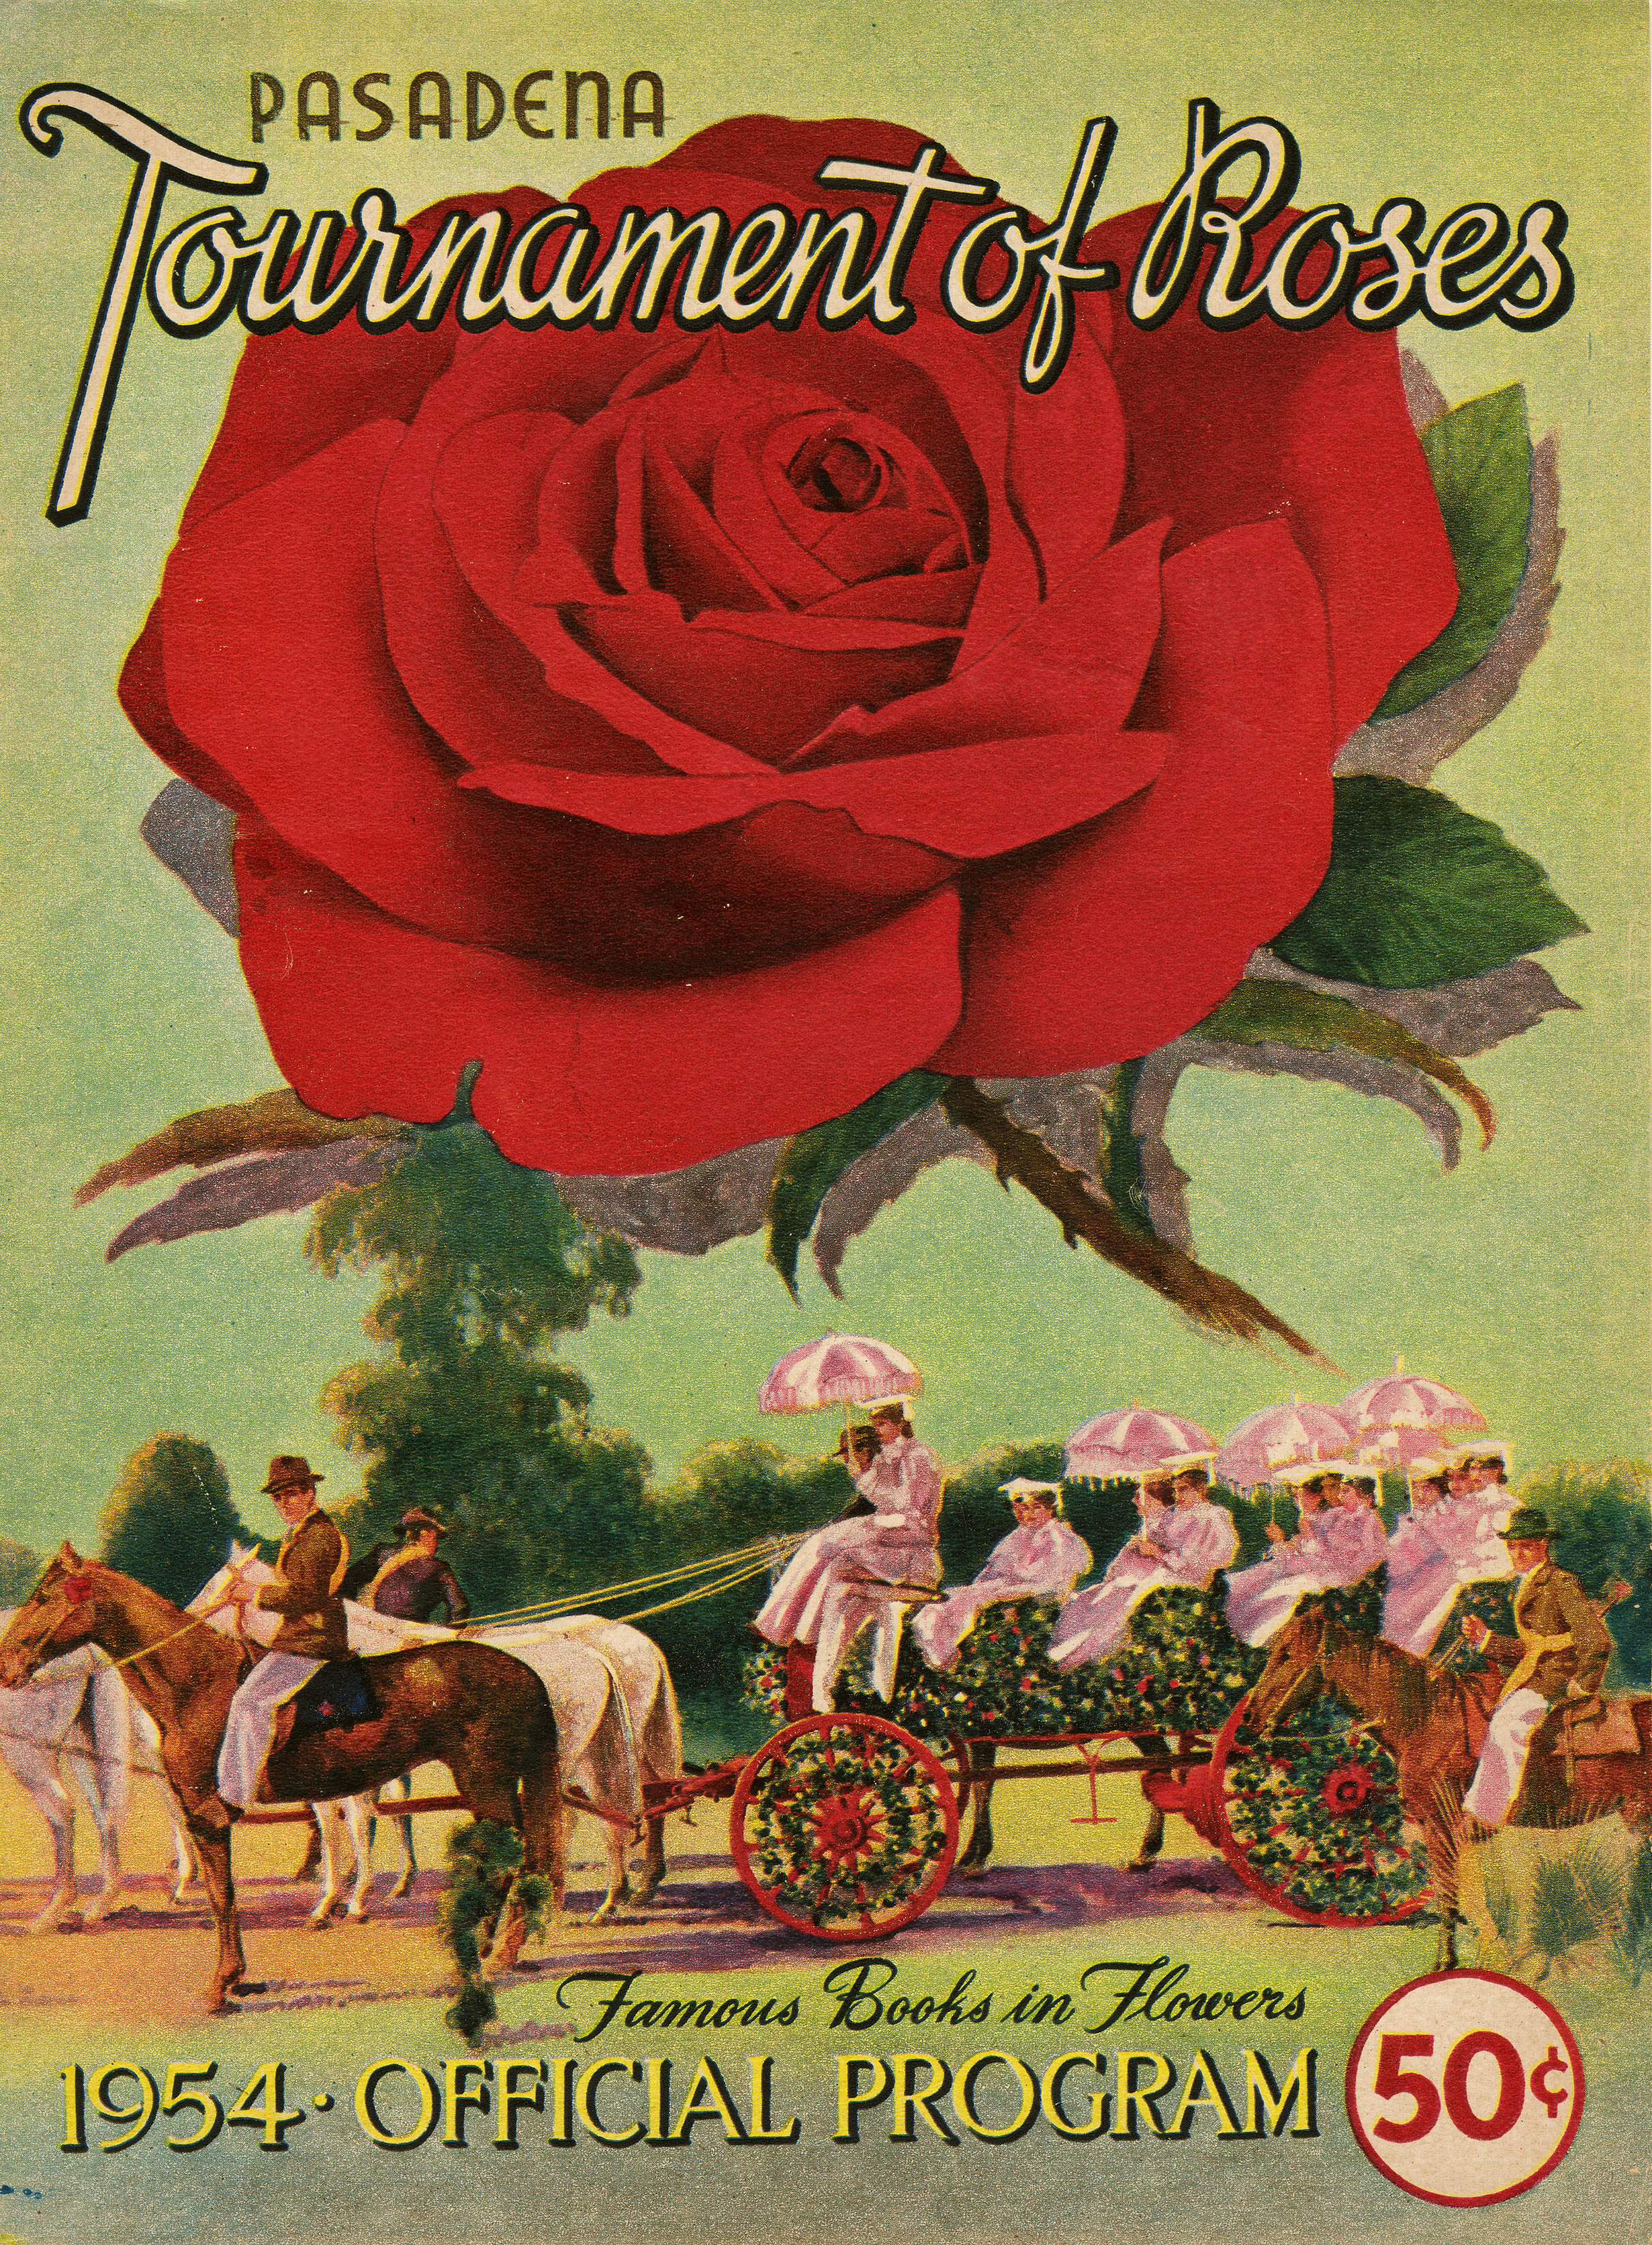 1954 Tournament of Roses parade program cover